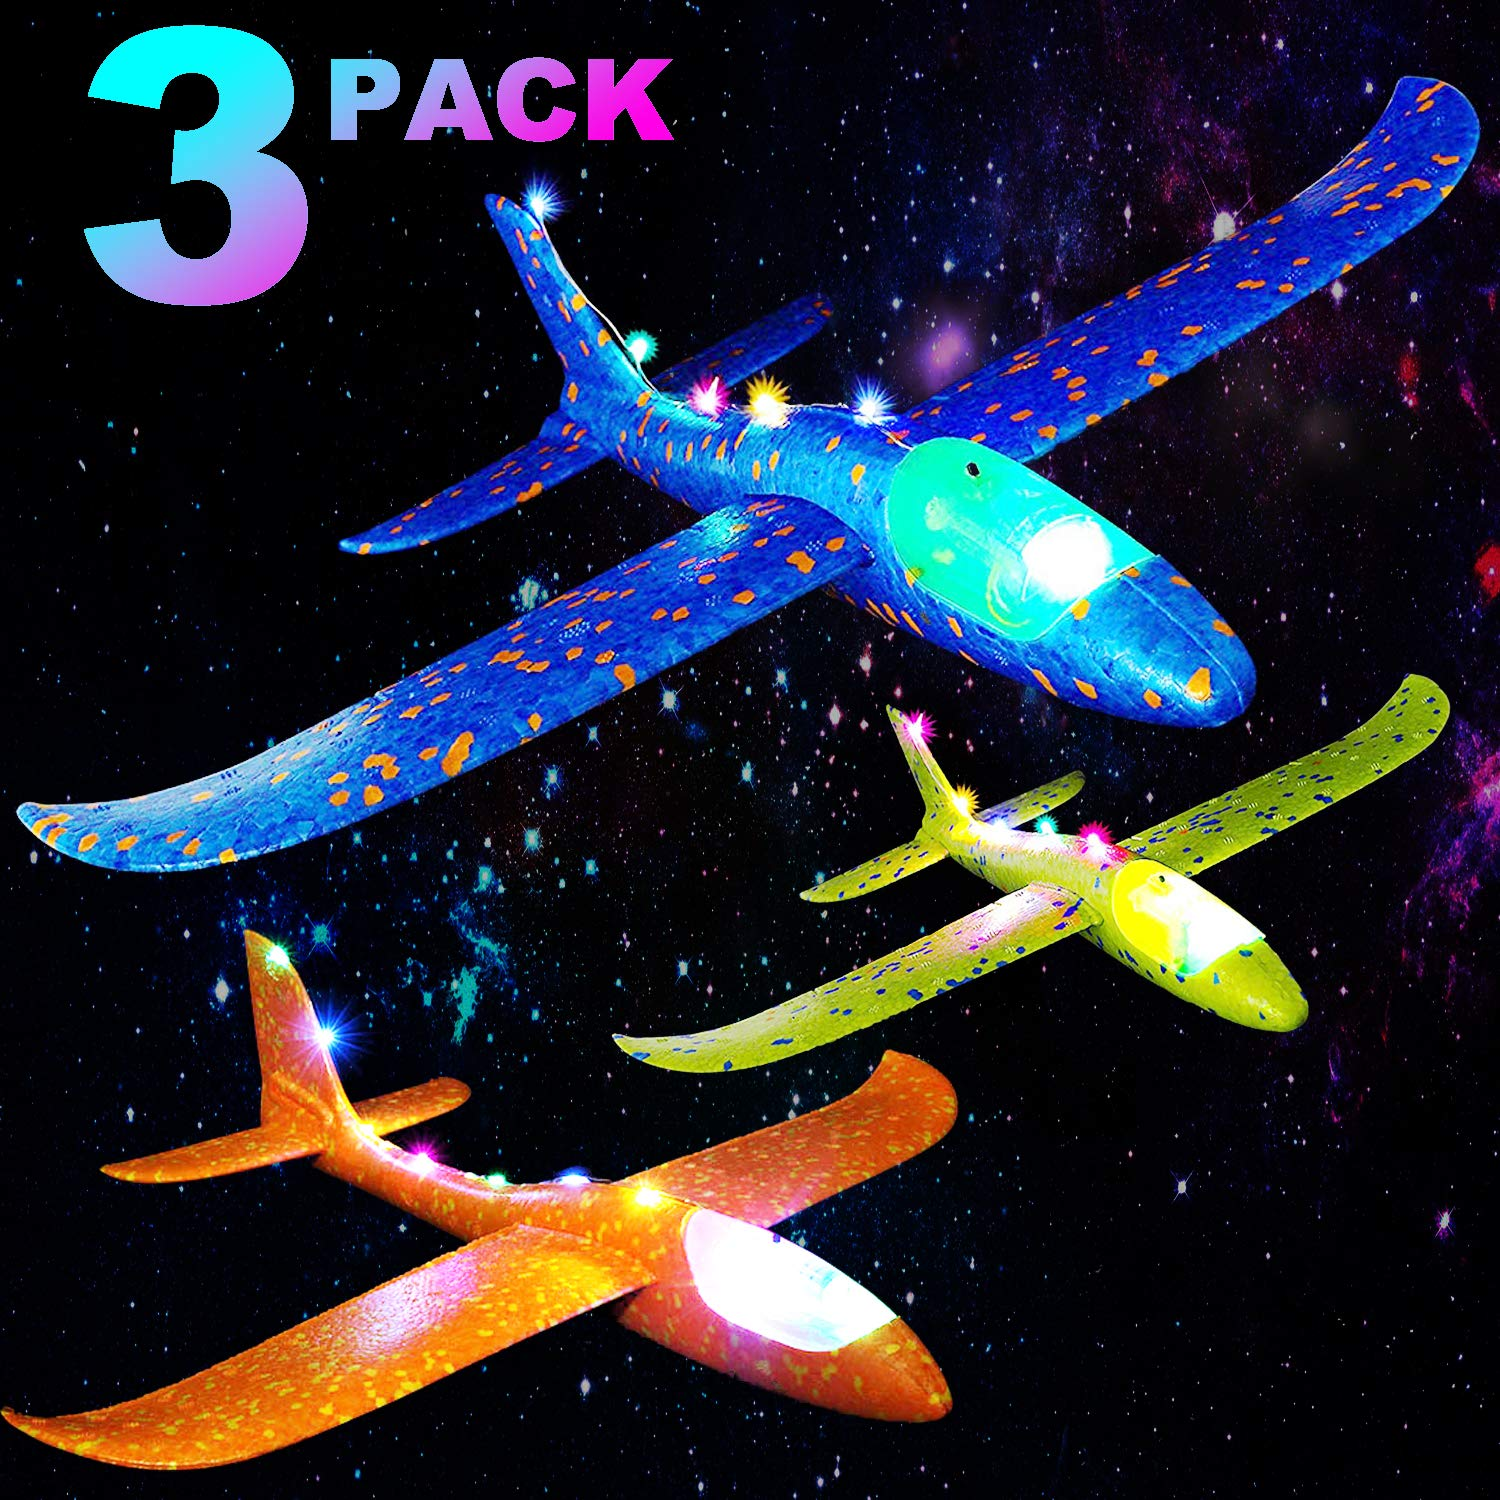 Set of 3 Light Up Airplane Toys for Kids 13.6 INCH Large Throwing Foam Plane Glider for Boys Girls Birthday Gift Glow in The Dark Outdoor Sport Flying Game Toy for 3 4 5 6 7 Year Old Toddlers Teens